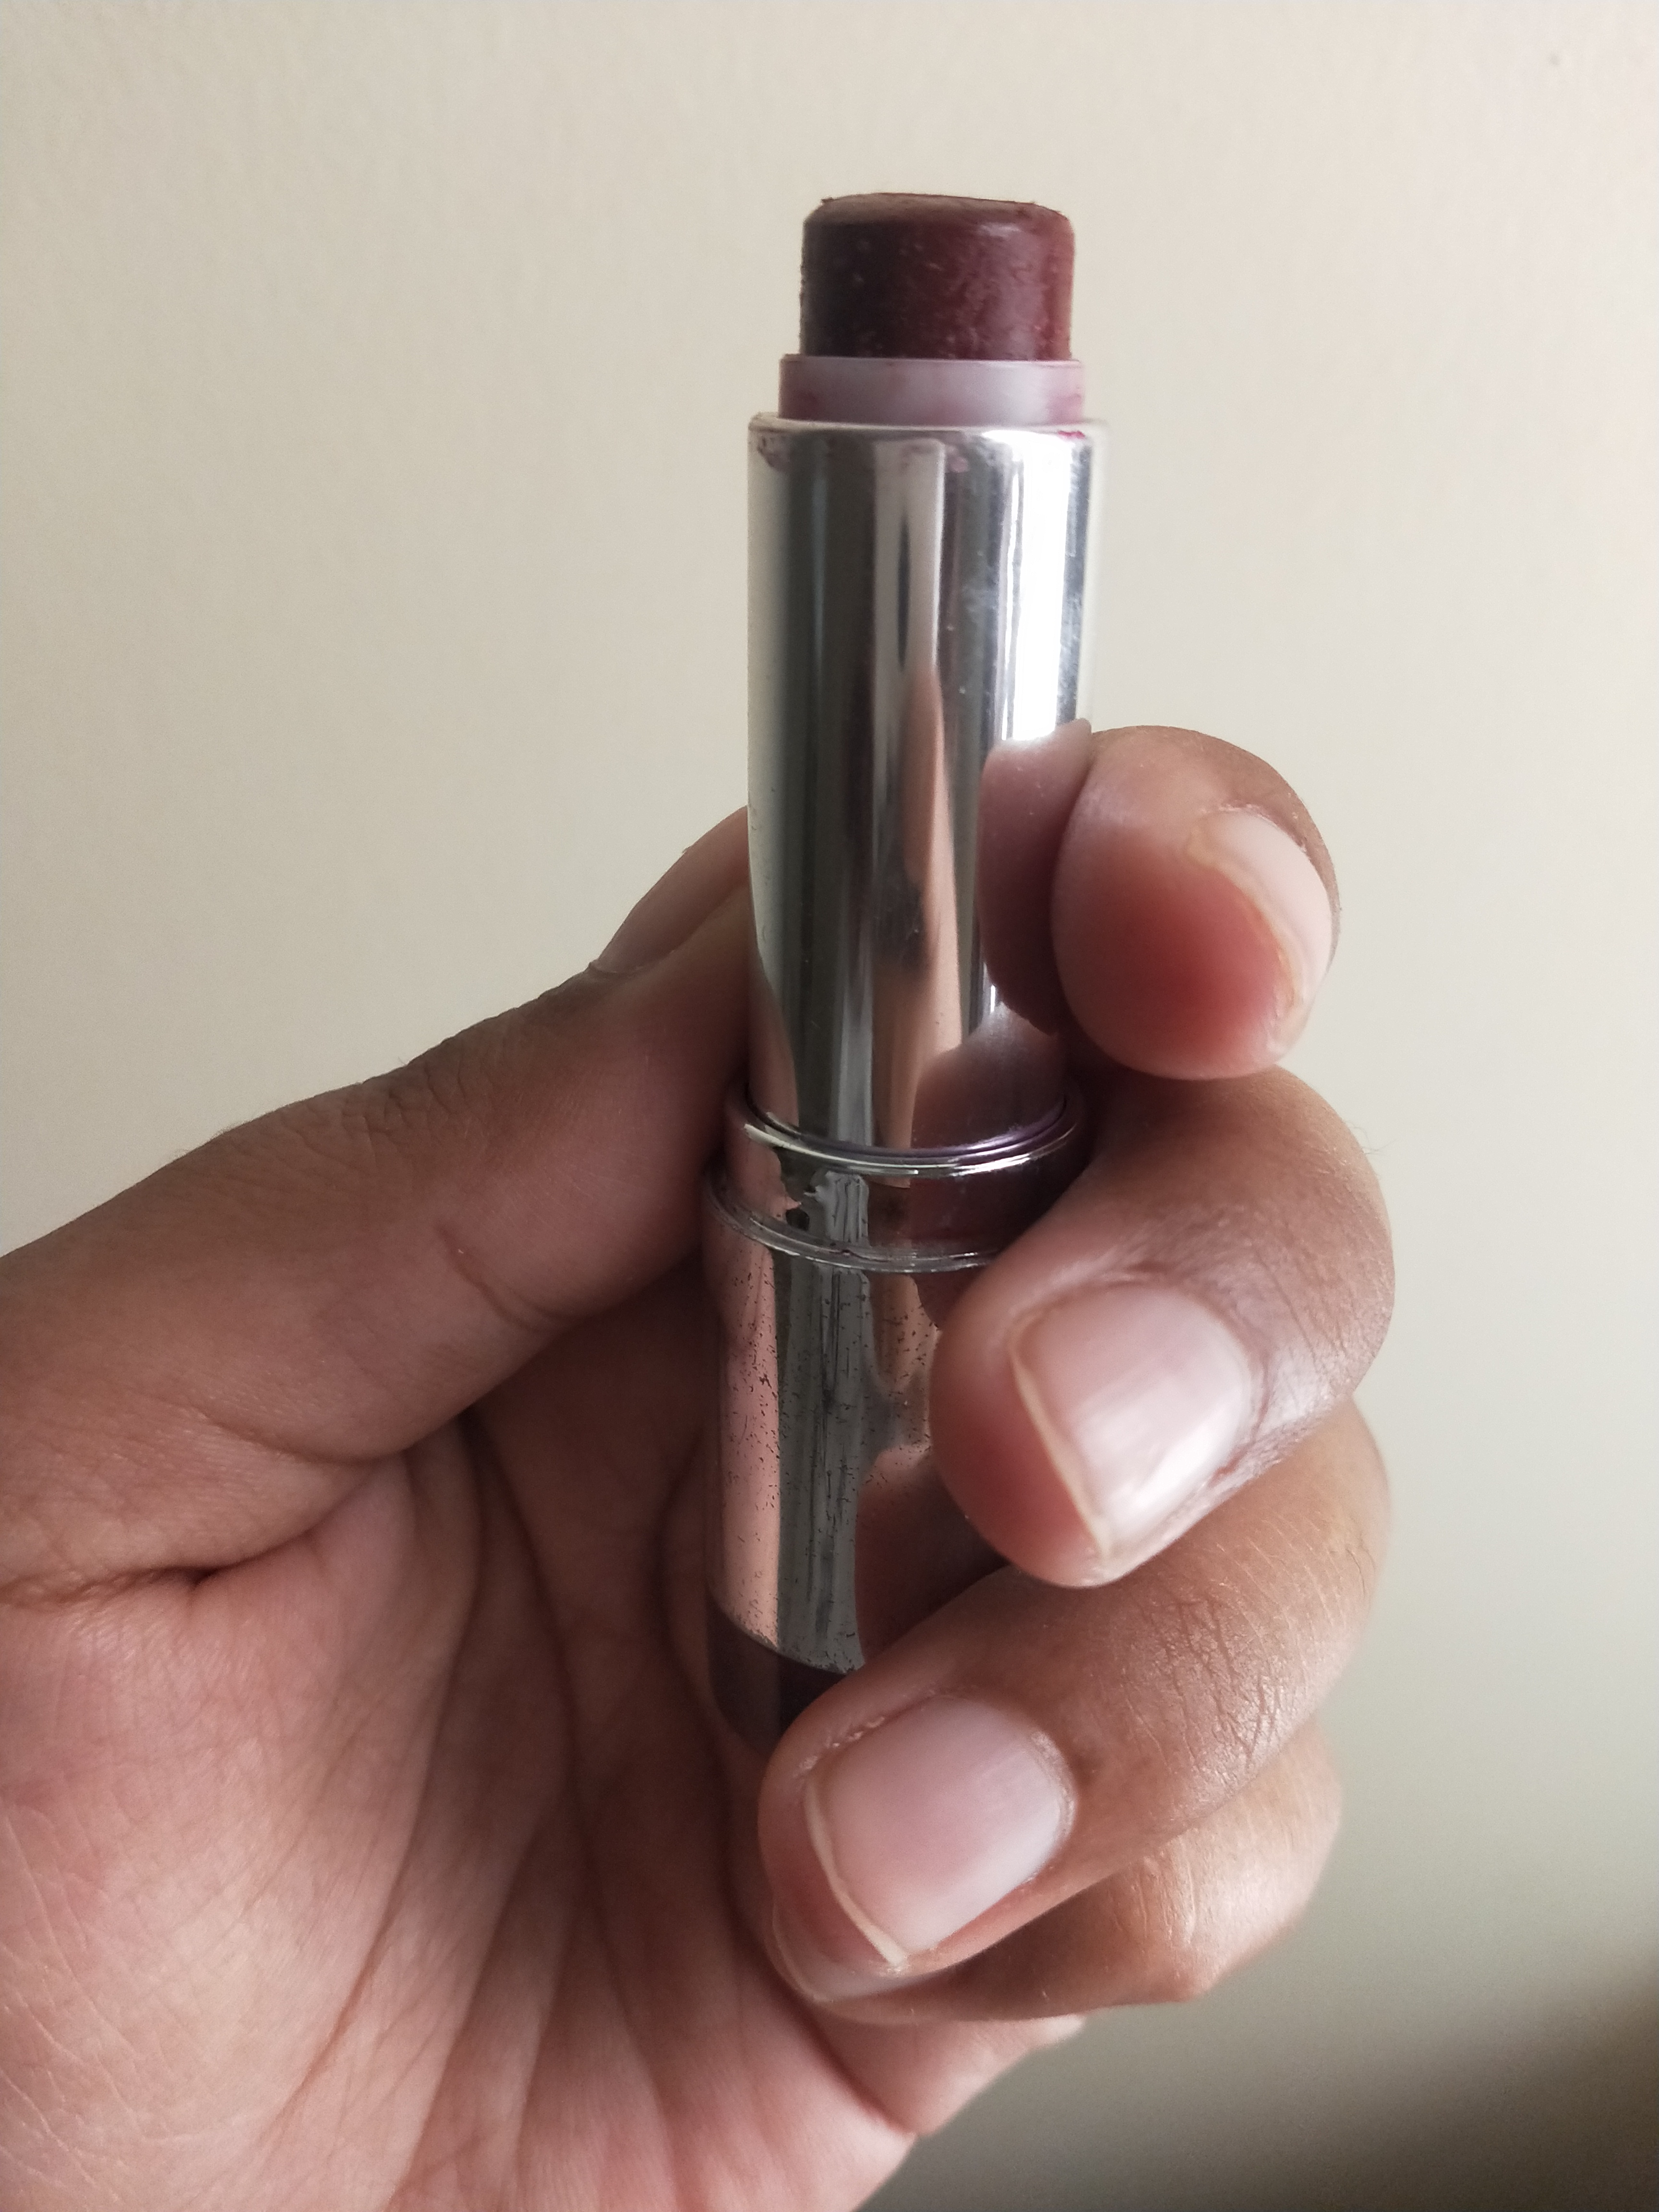 Colorbar Velvet Matte Lipstick-Creamy texture, pigmented, good for daily use-By miss_hungry_soul-1